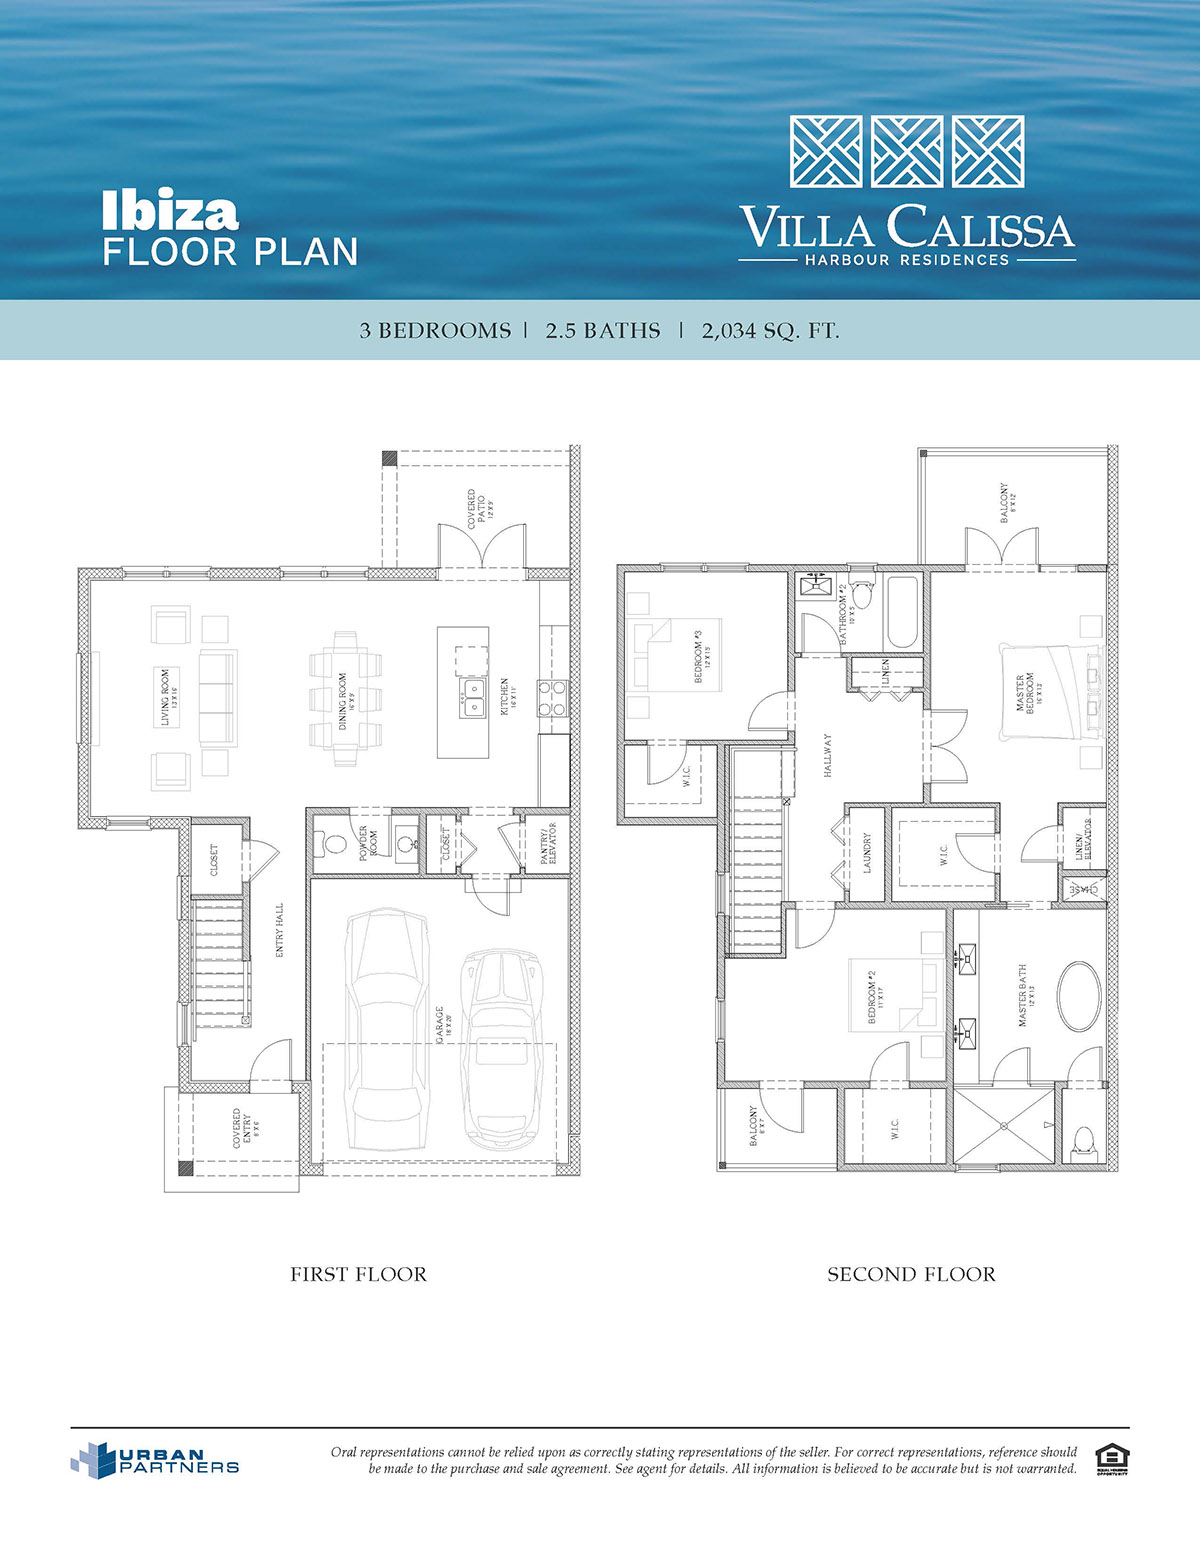 Ibiza floorplan at Villa Calissa